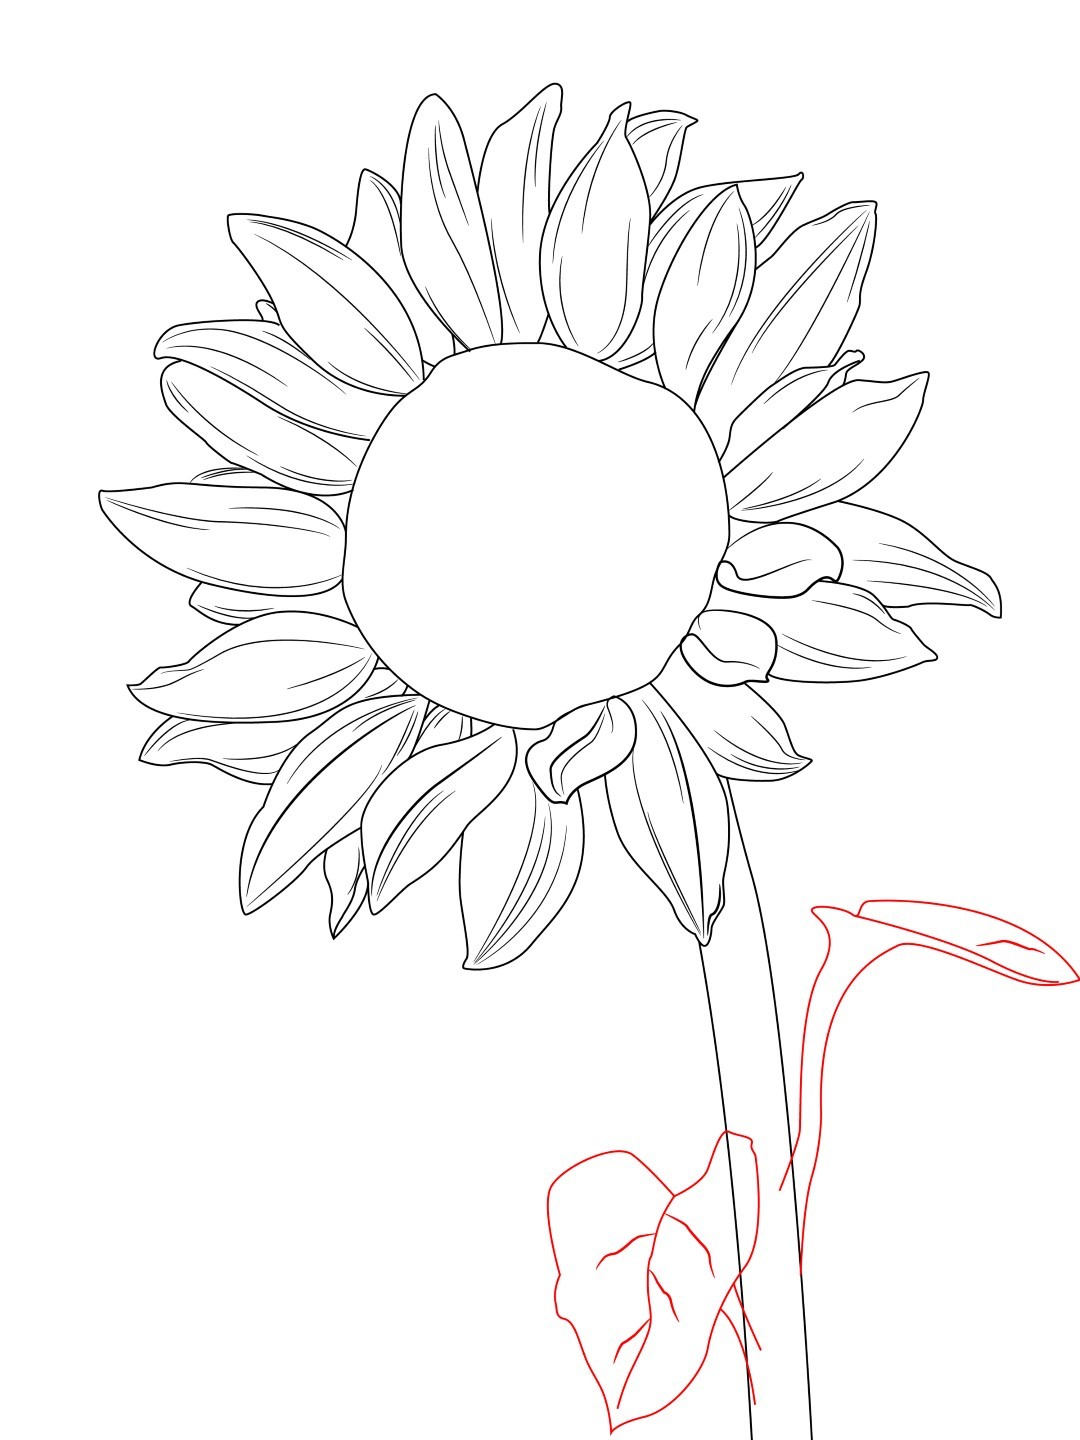 1080x1440 Drawn Sunflower Flower Leaves